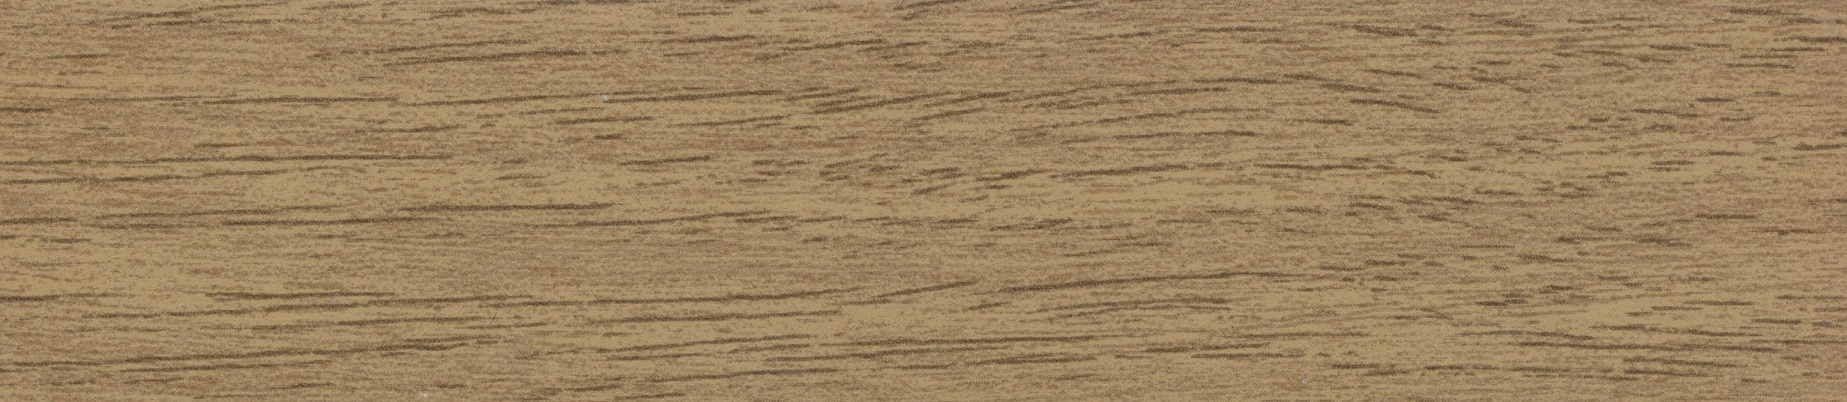 FORMICA 9312:PLANKED URBAN OAK 15/16x.018 CP41314 EMB LAC 600' CO